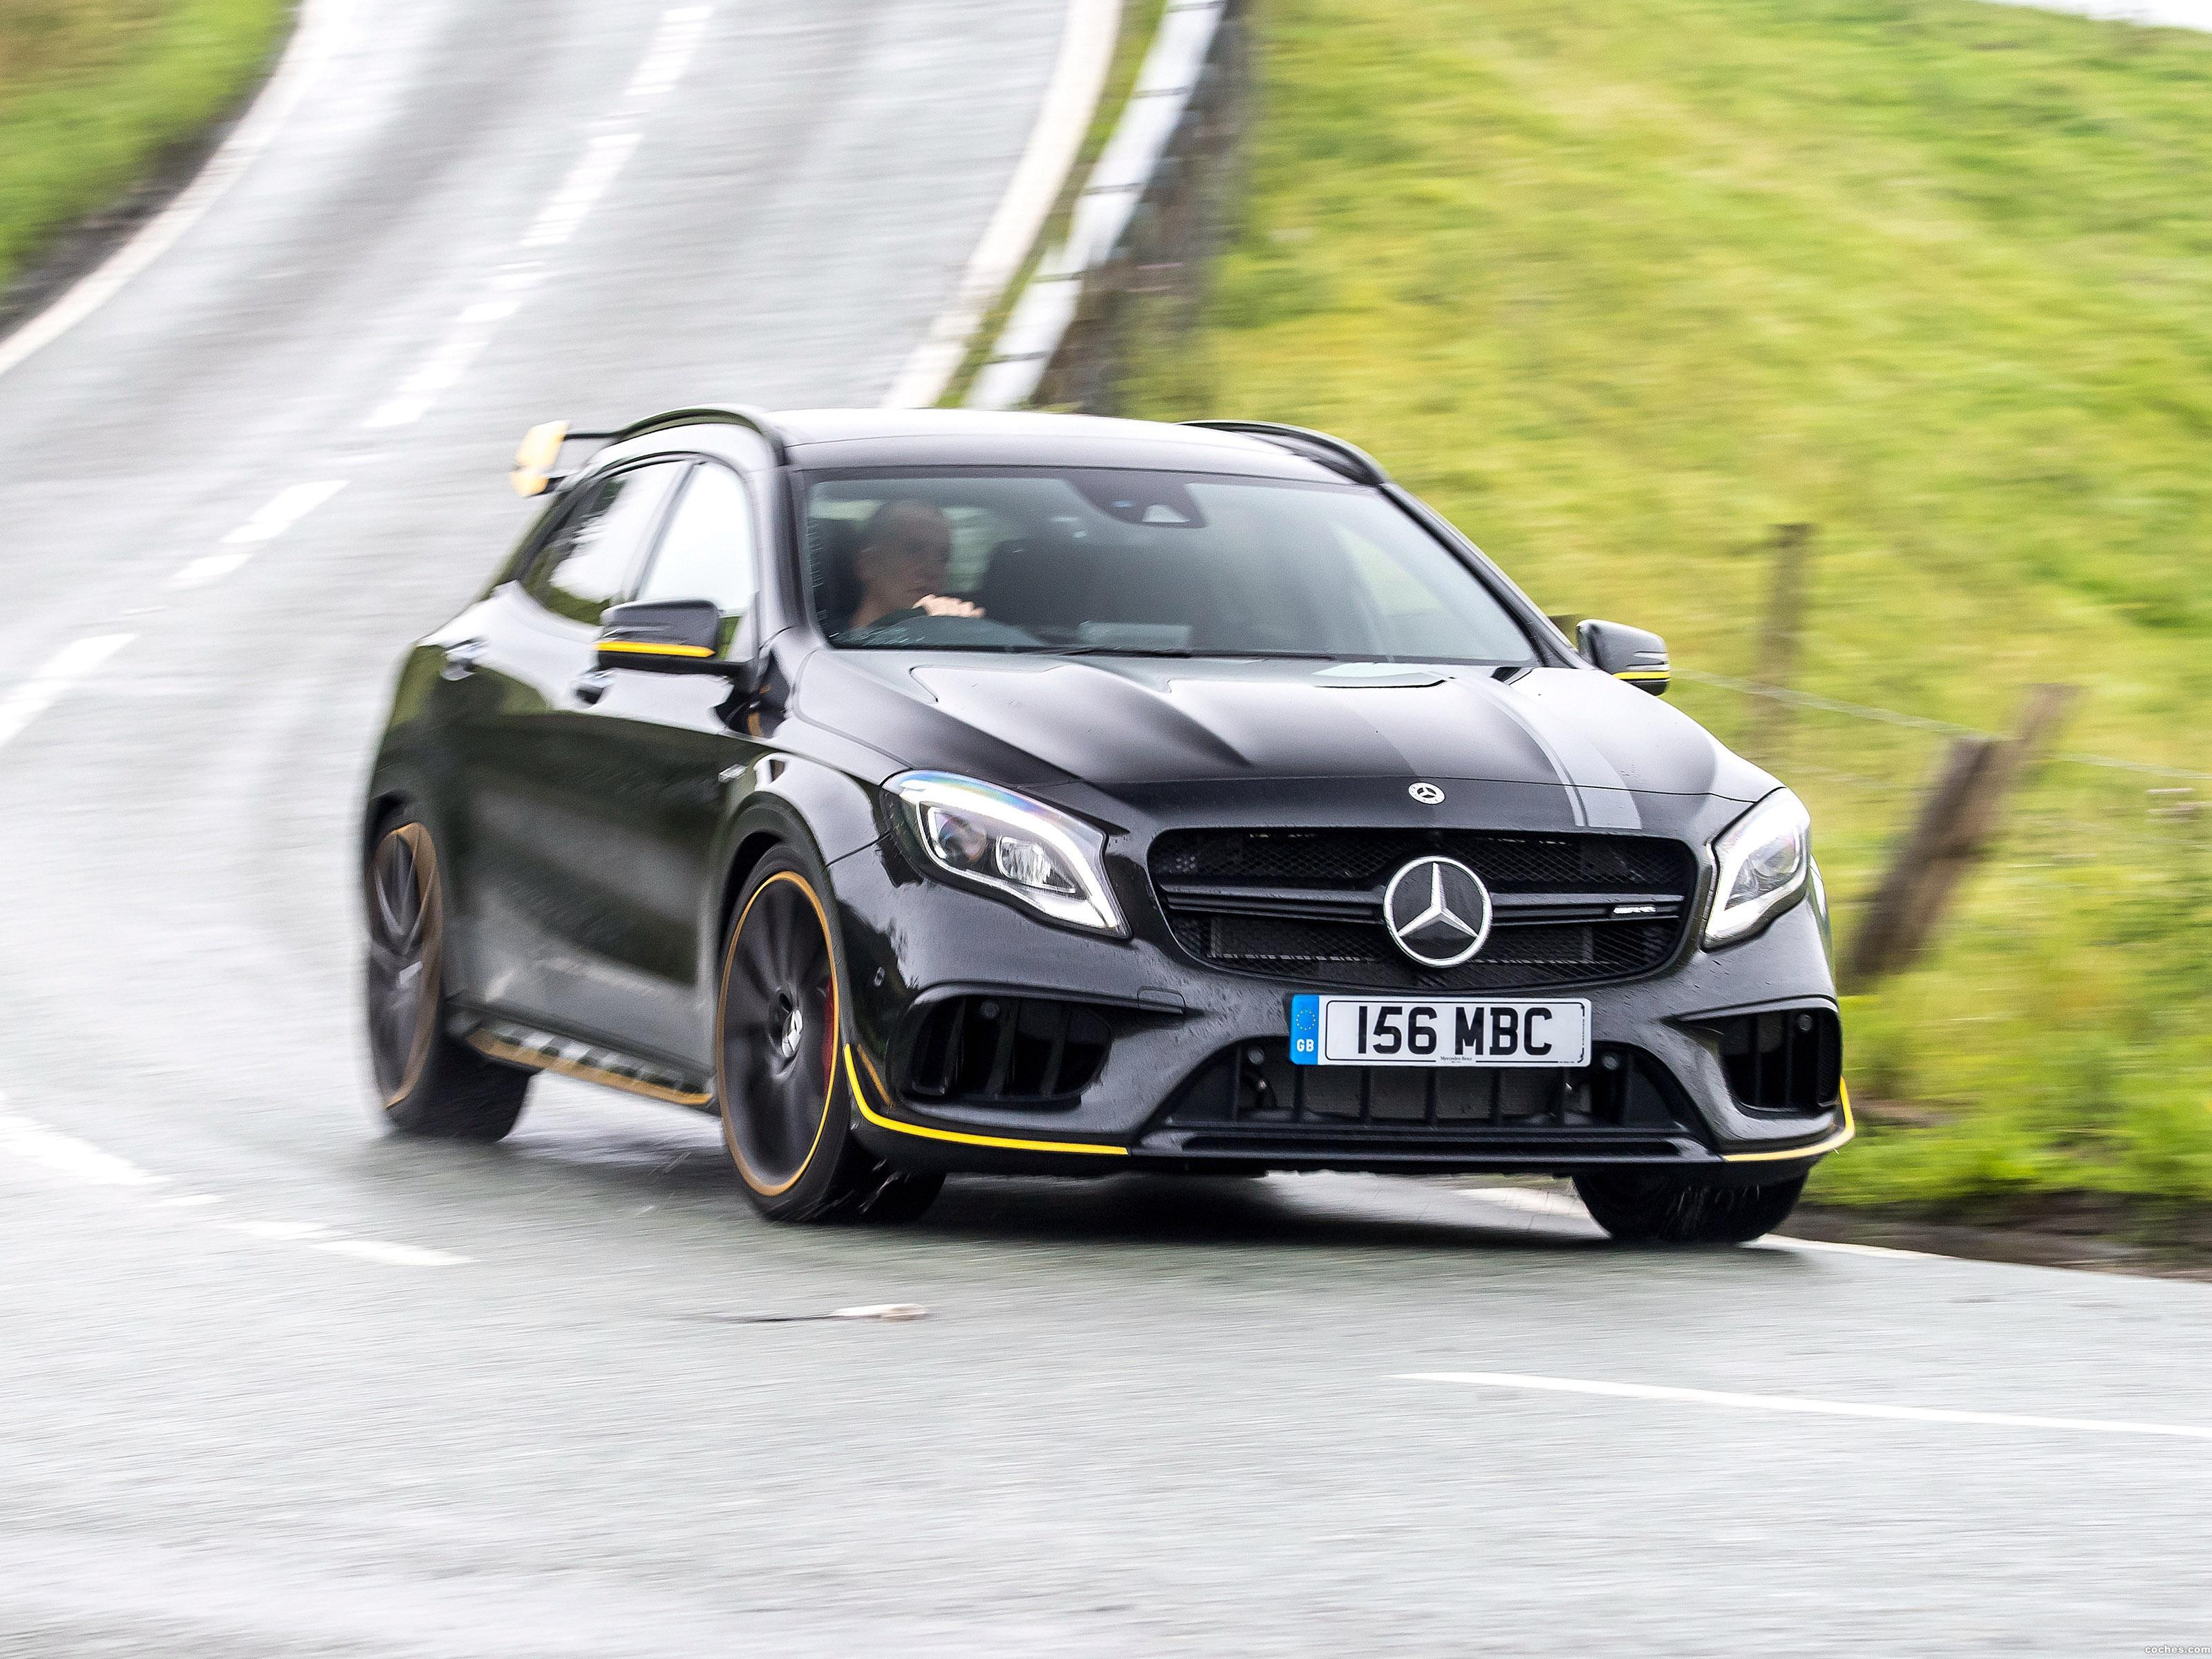 amg_mercedes-gla-45-4matic-yellow-night-edition-x156-uk-2017_r39.jpg